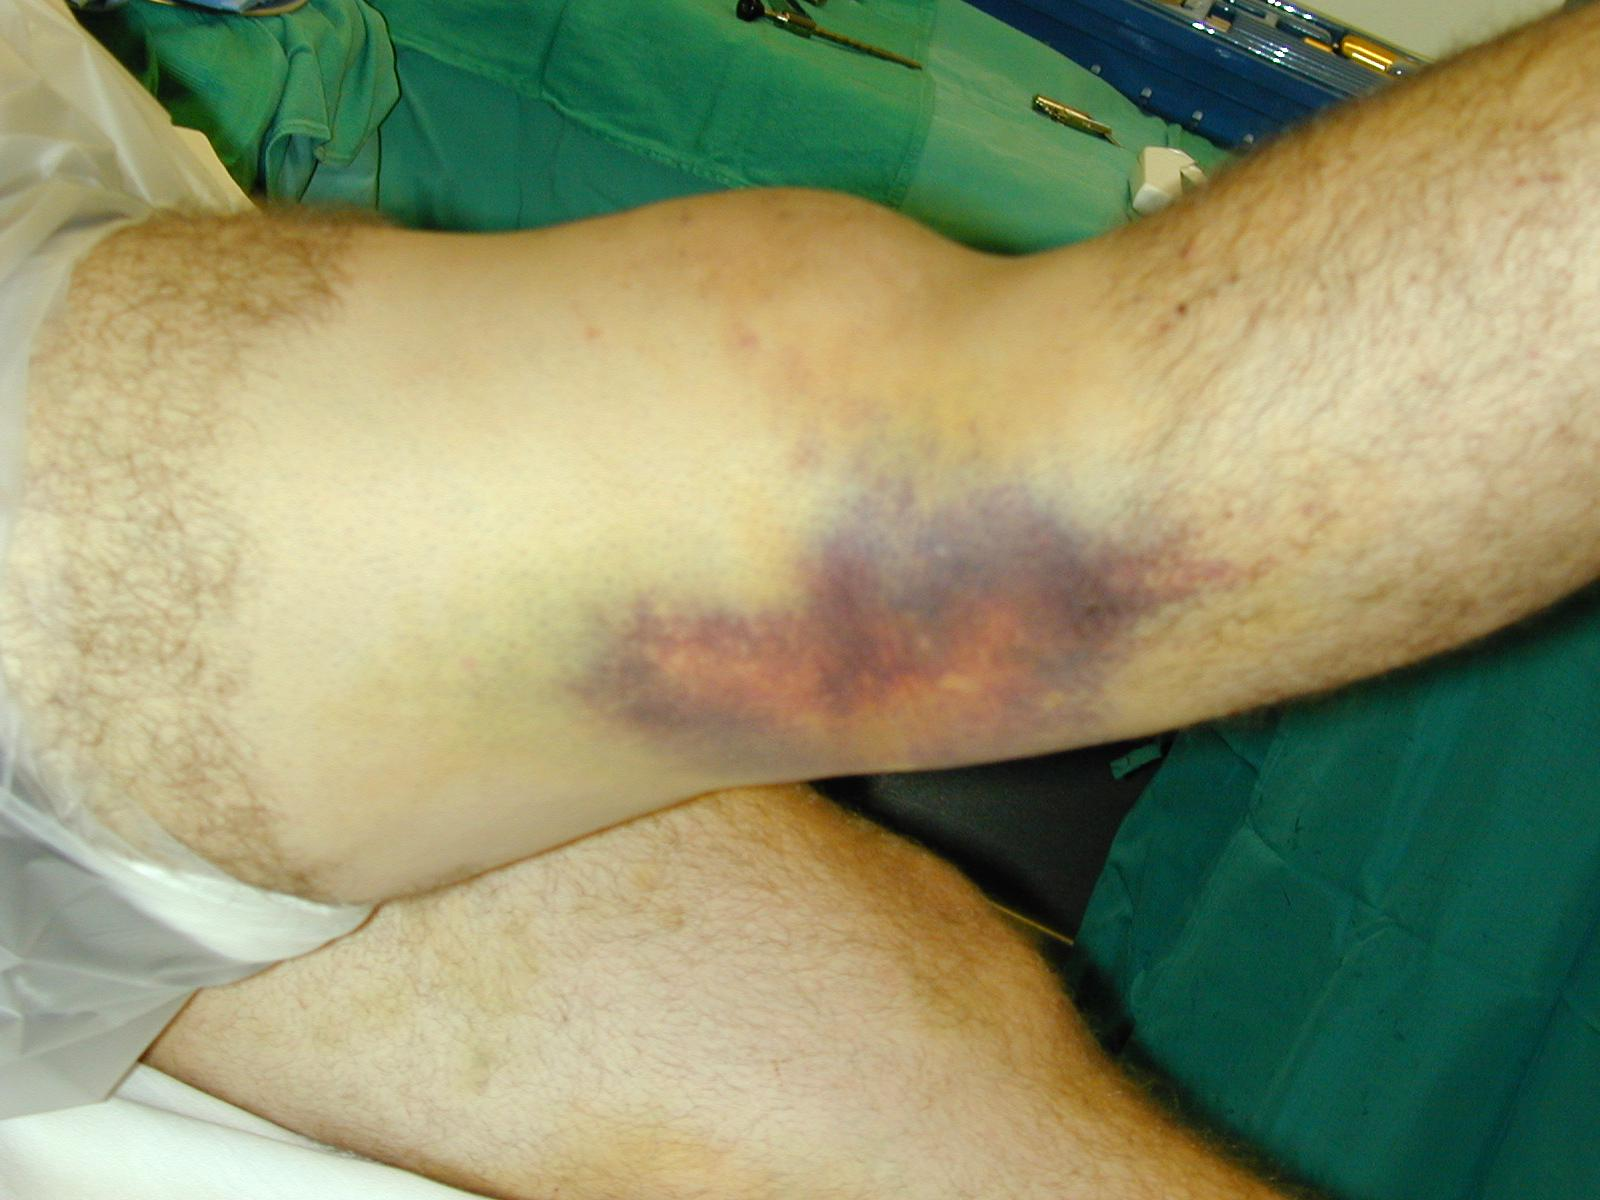 Knee Dislocation (emedicine.medscape.com)